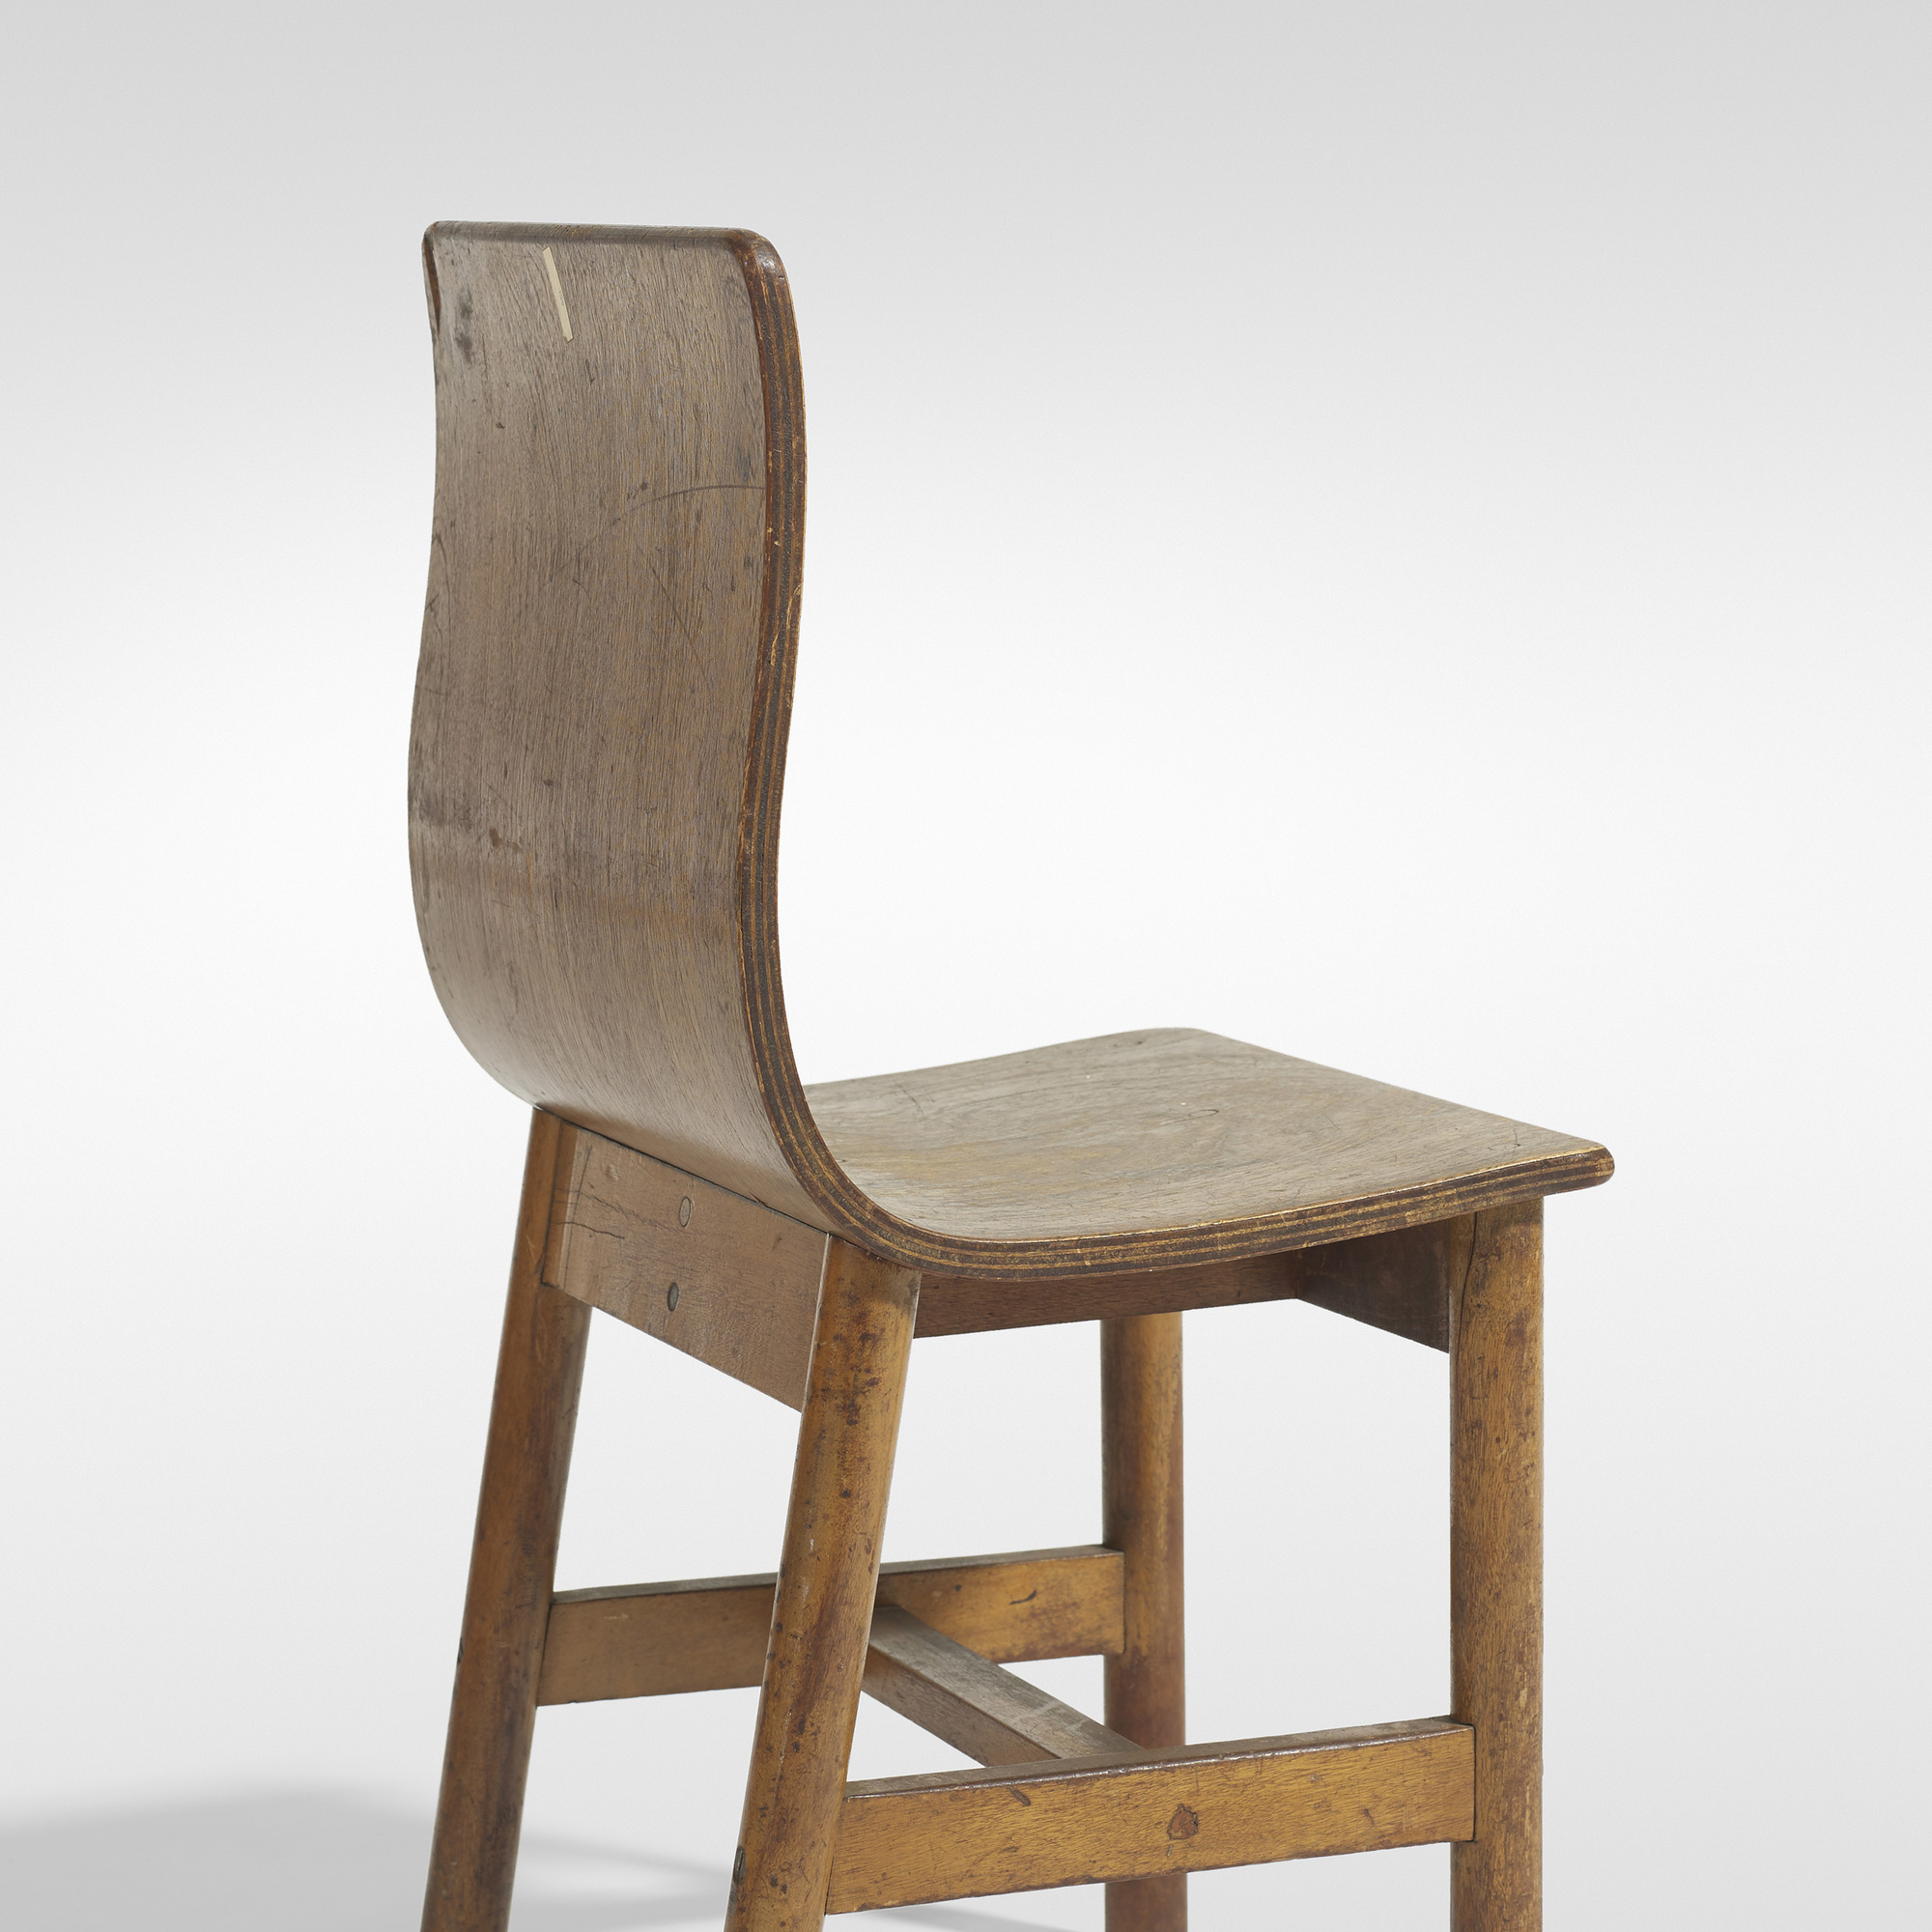 6 Charles Eames And Eero Saarinen Rare And Early Chair